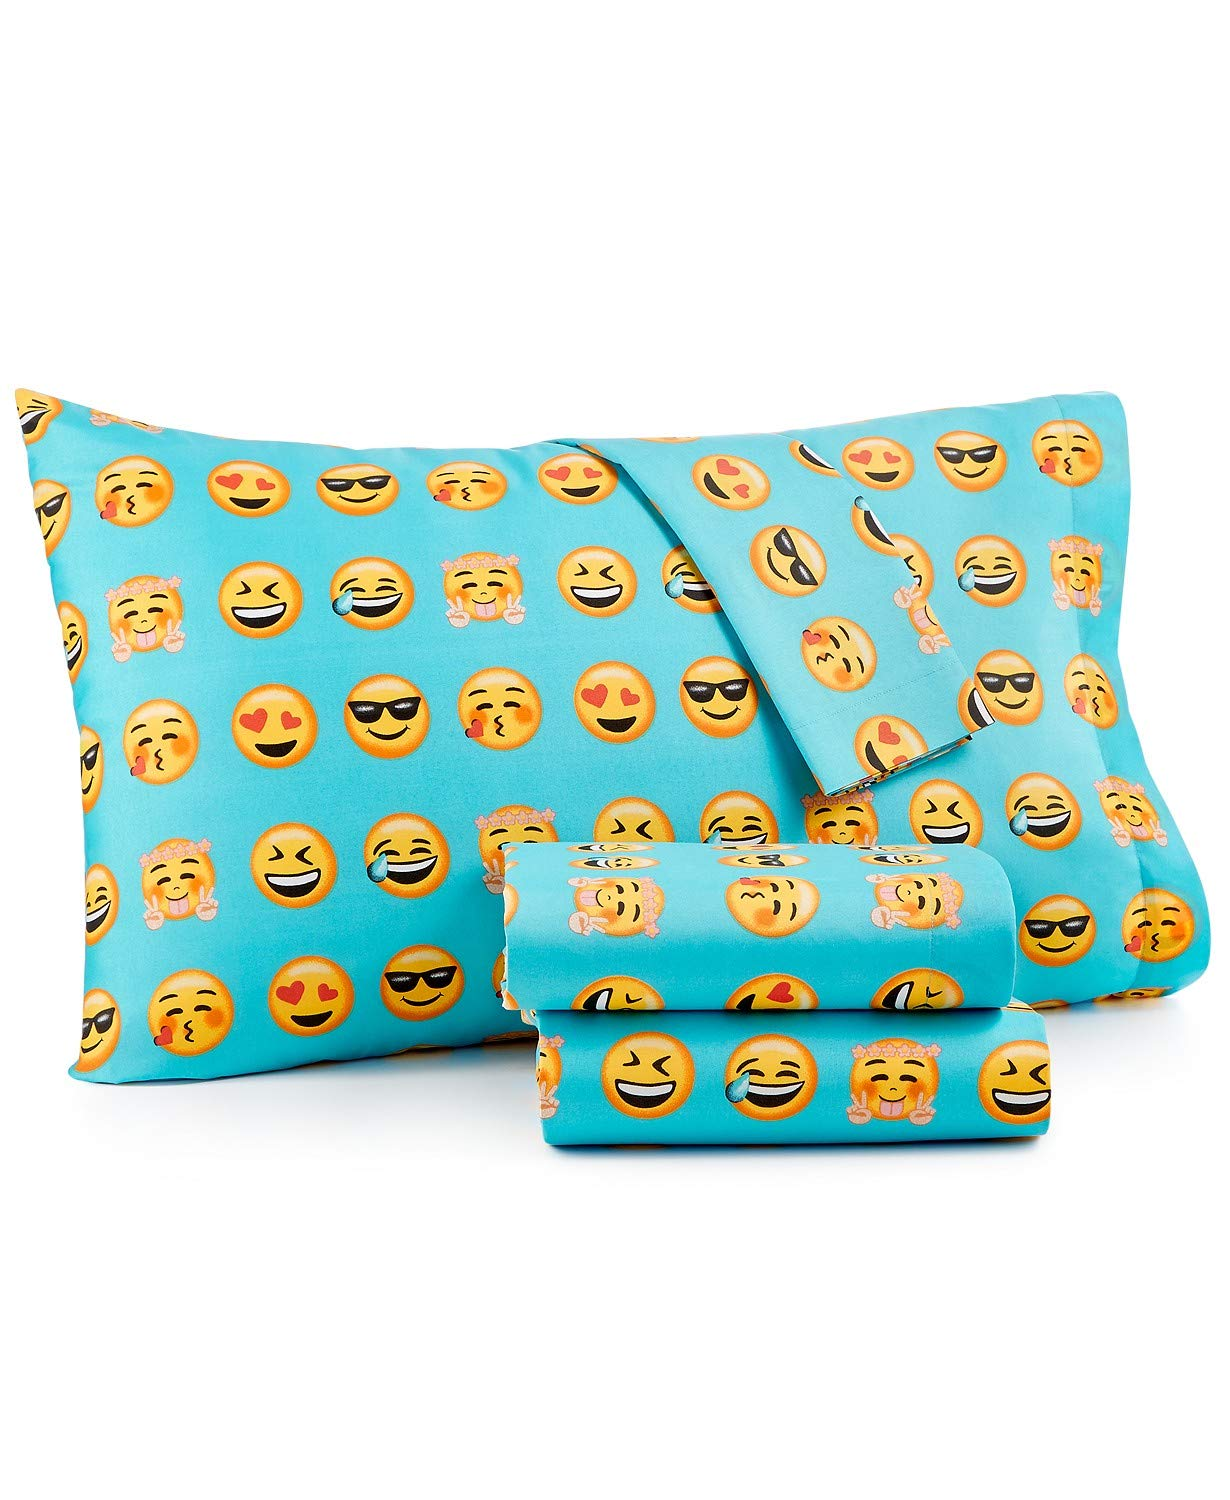 Kids Zone Yellow & Turquoise Emoticon Emoji Bedding - Sheet Set with Pillowcase(s) (Twin)